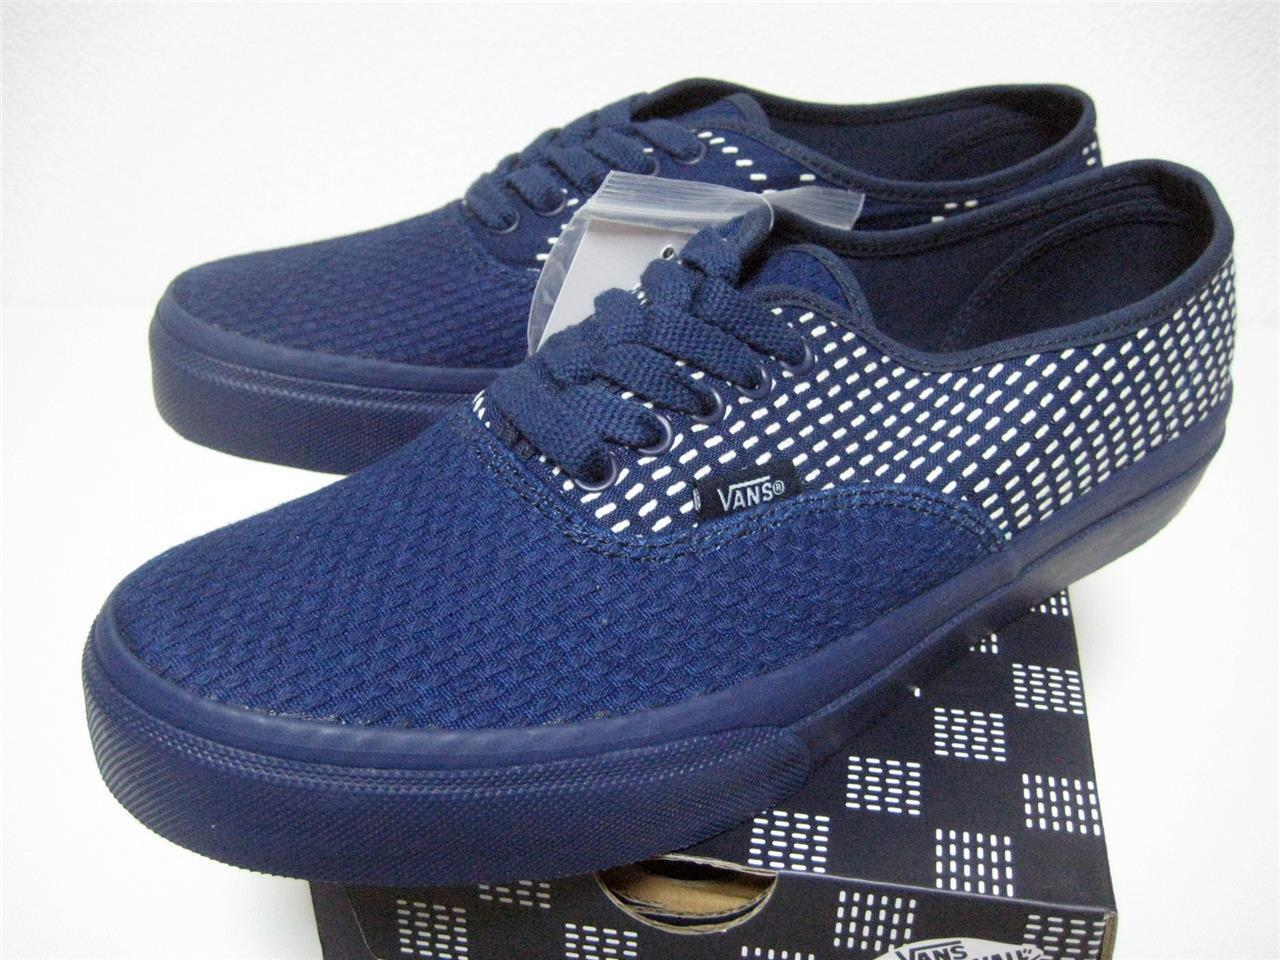 VANS FDMTL AUTHENTIC navy V44CL FUNDAMENTAL from Japan US10 brand new